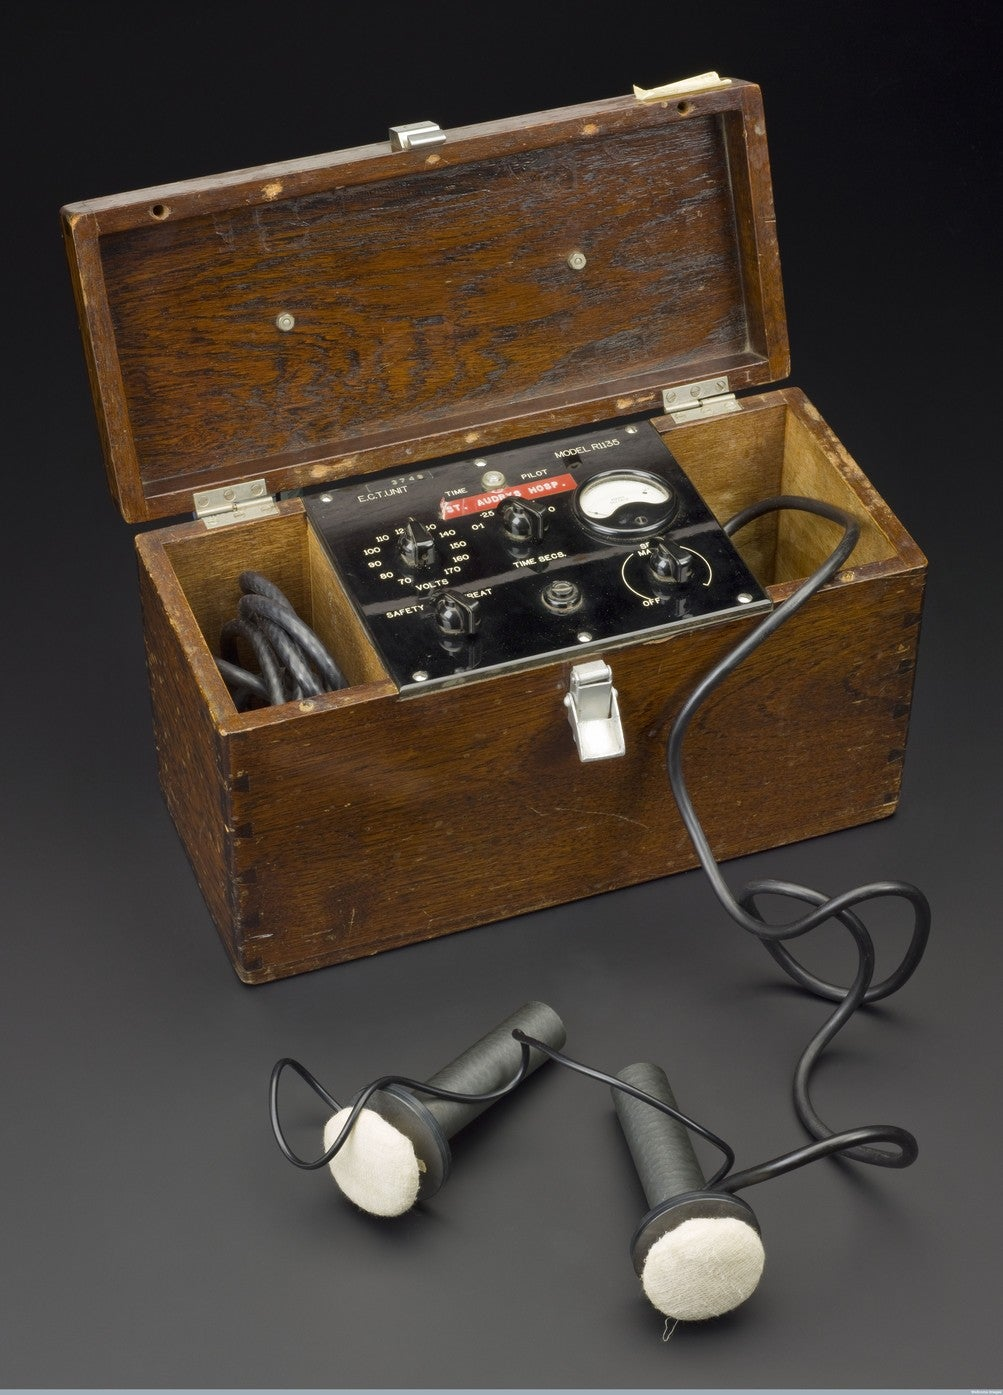 Electroconvulsive Therapy: A History of Controversy, but